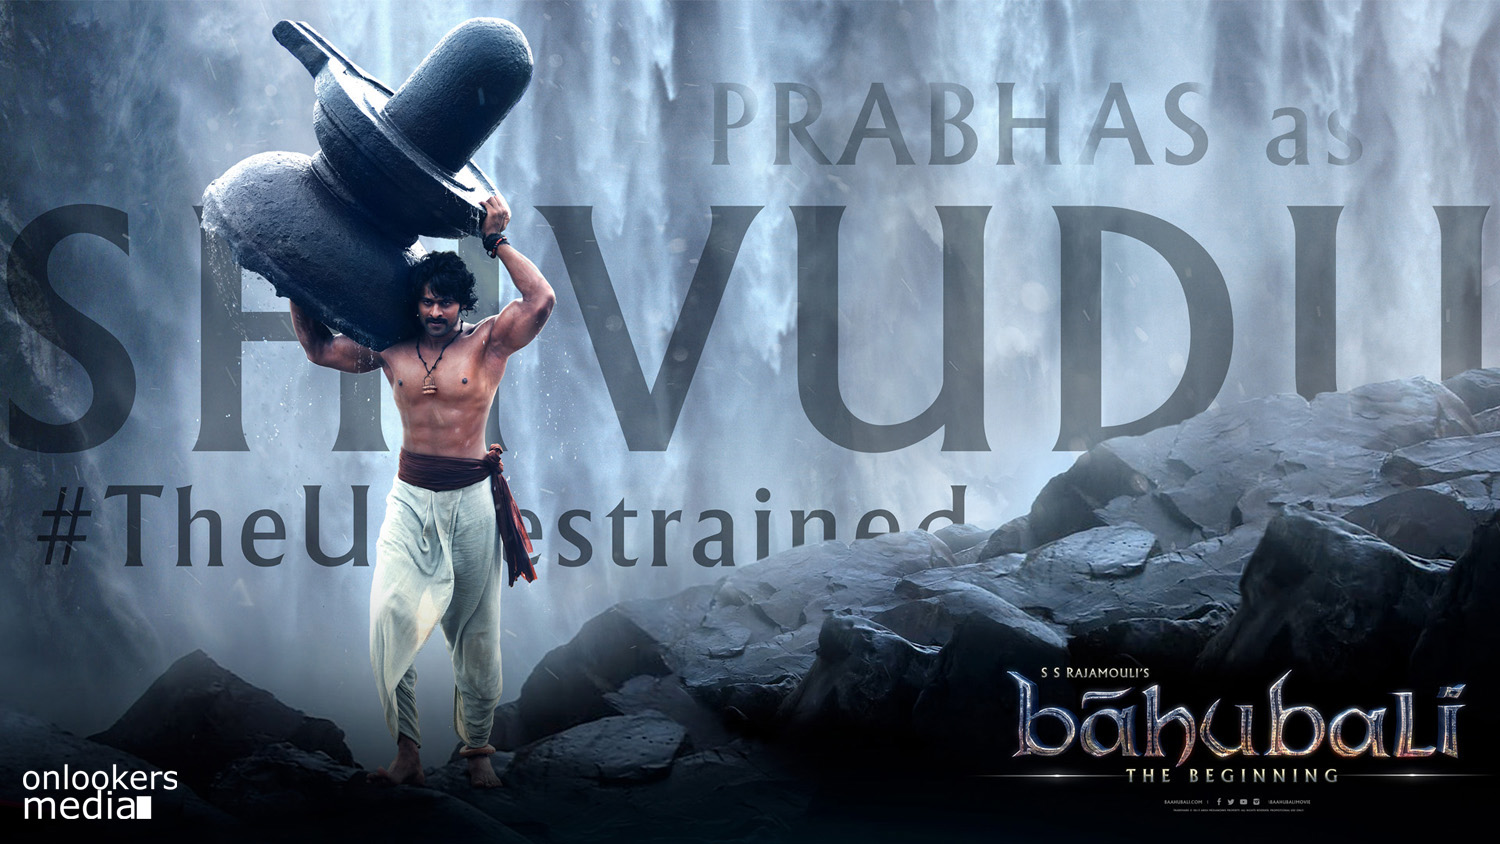 Baahubali Posters-Images-Stills-Prabhas-Raana-Anushka Shetty-Onlookers Media